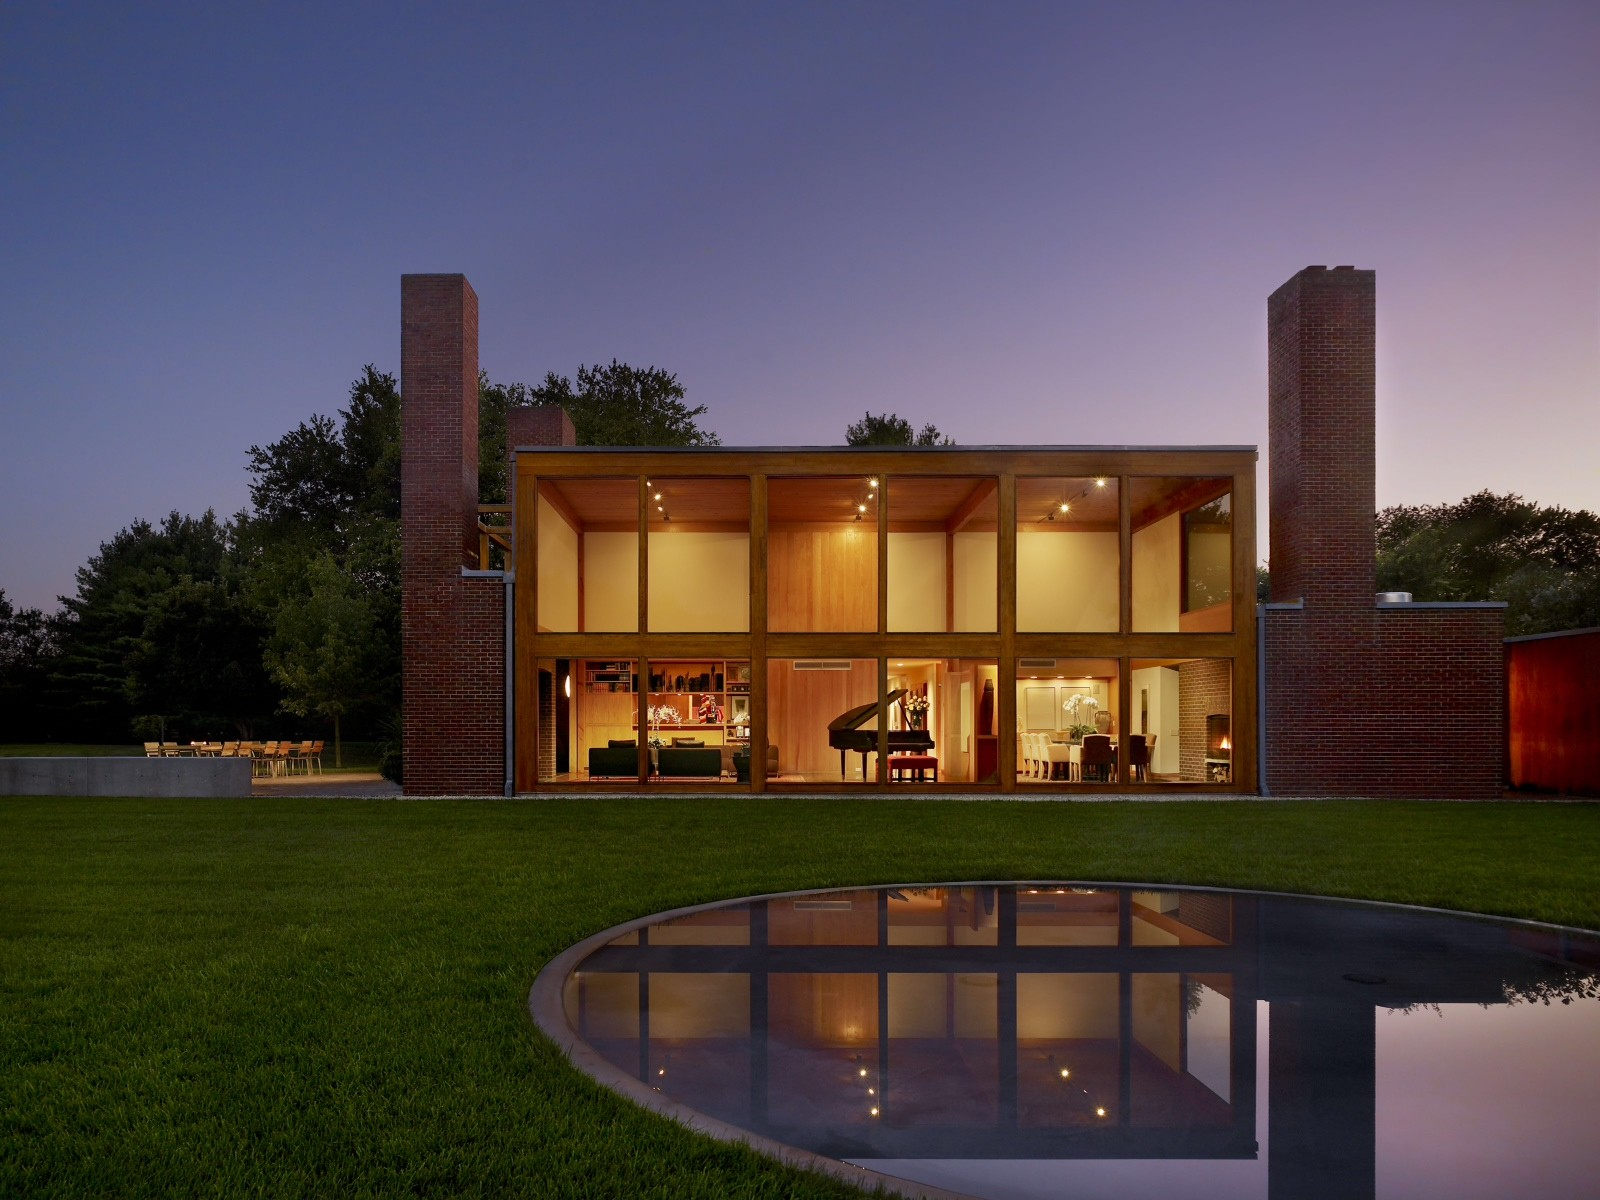 Interior of Louis Kahn's 1971 Korman House to be Redesigned